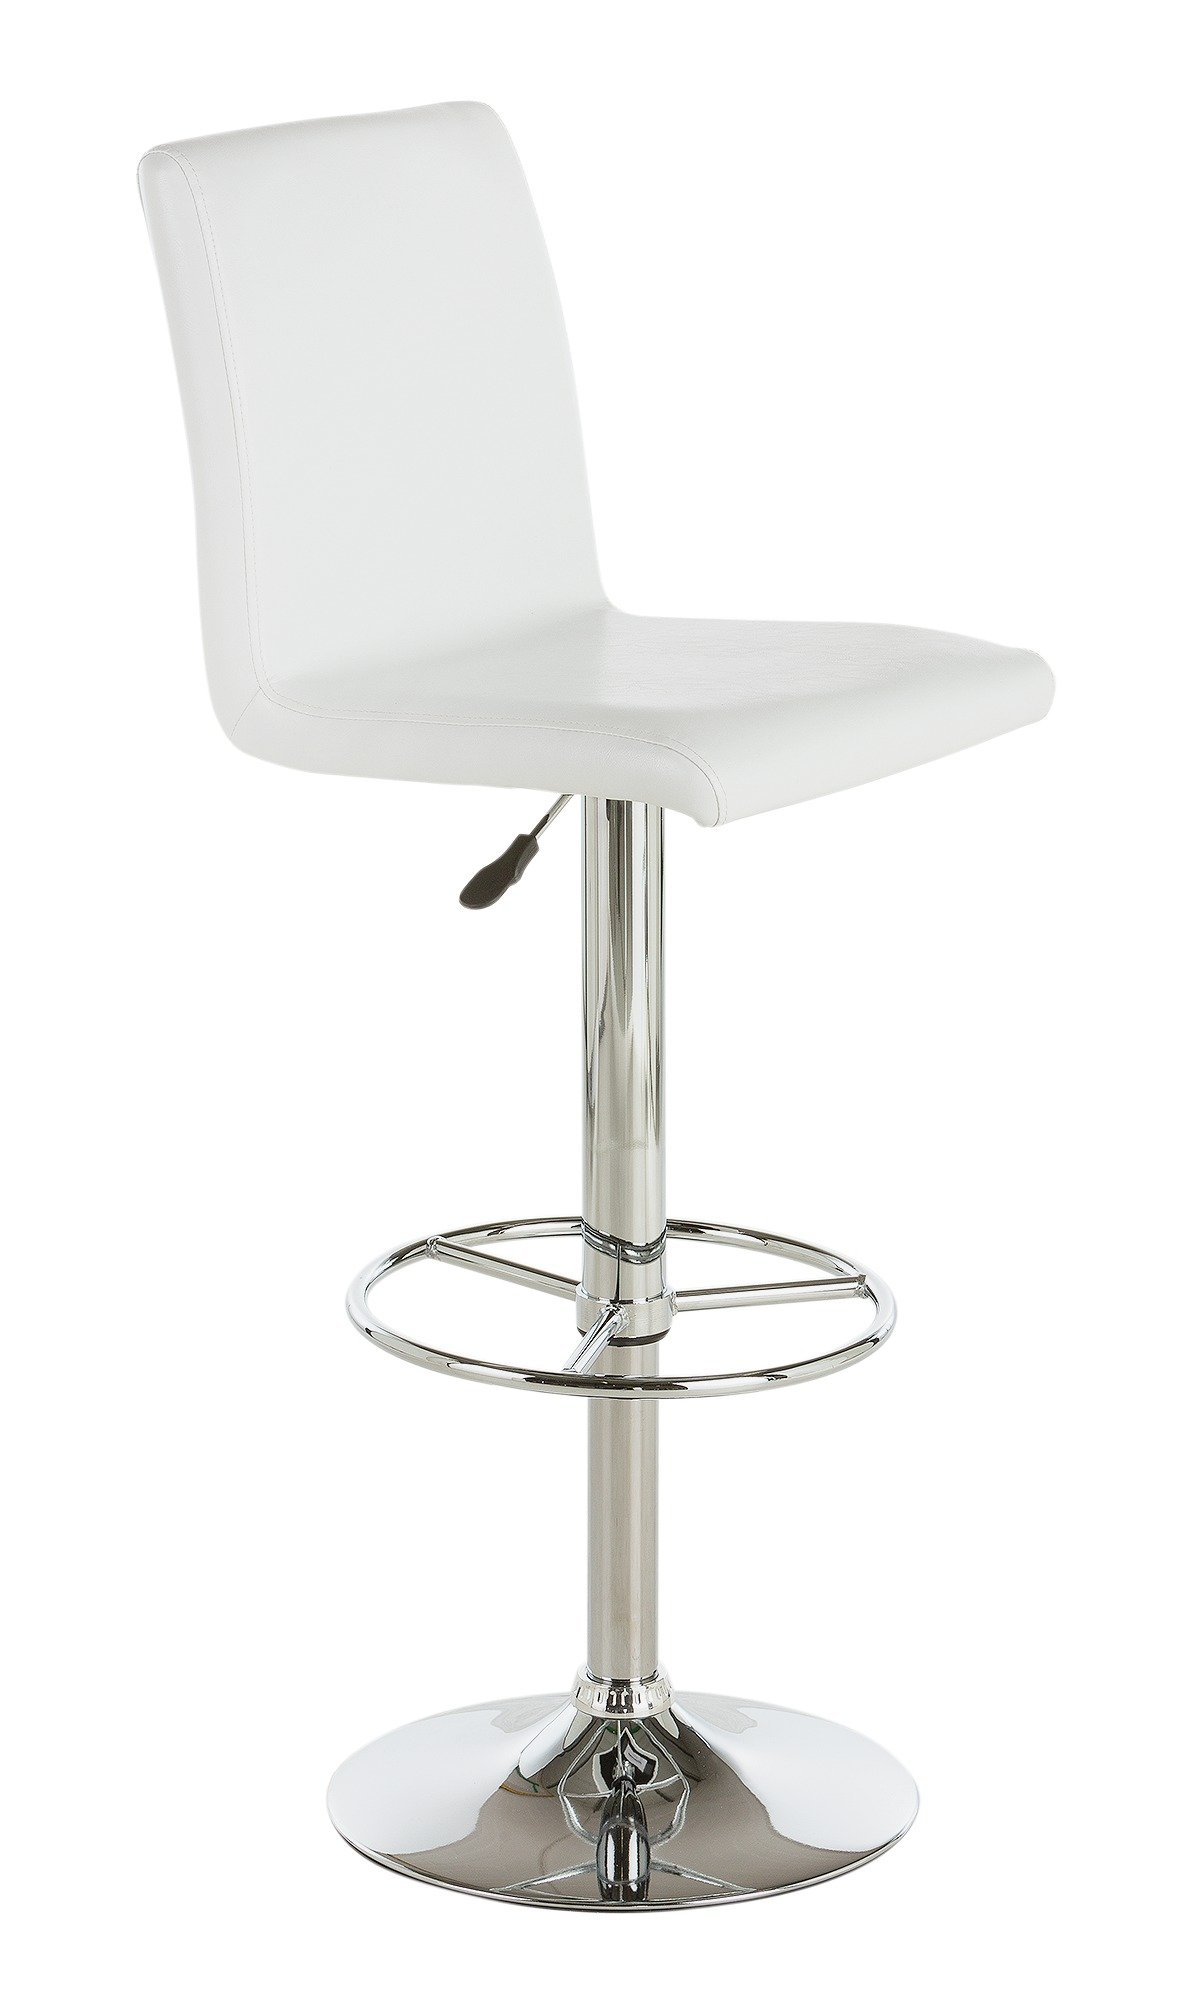 Image of Collection Turner Faux Leather Bar Stool - White